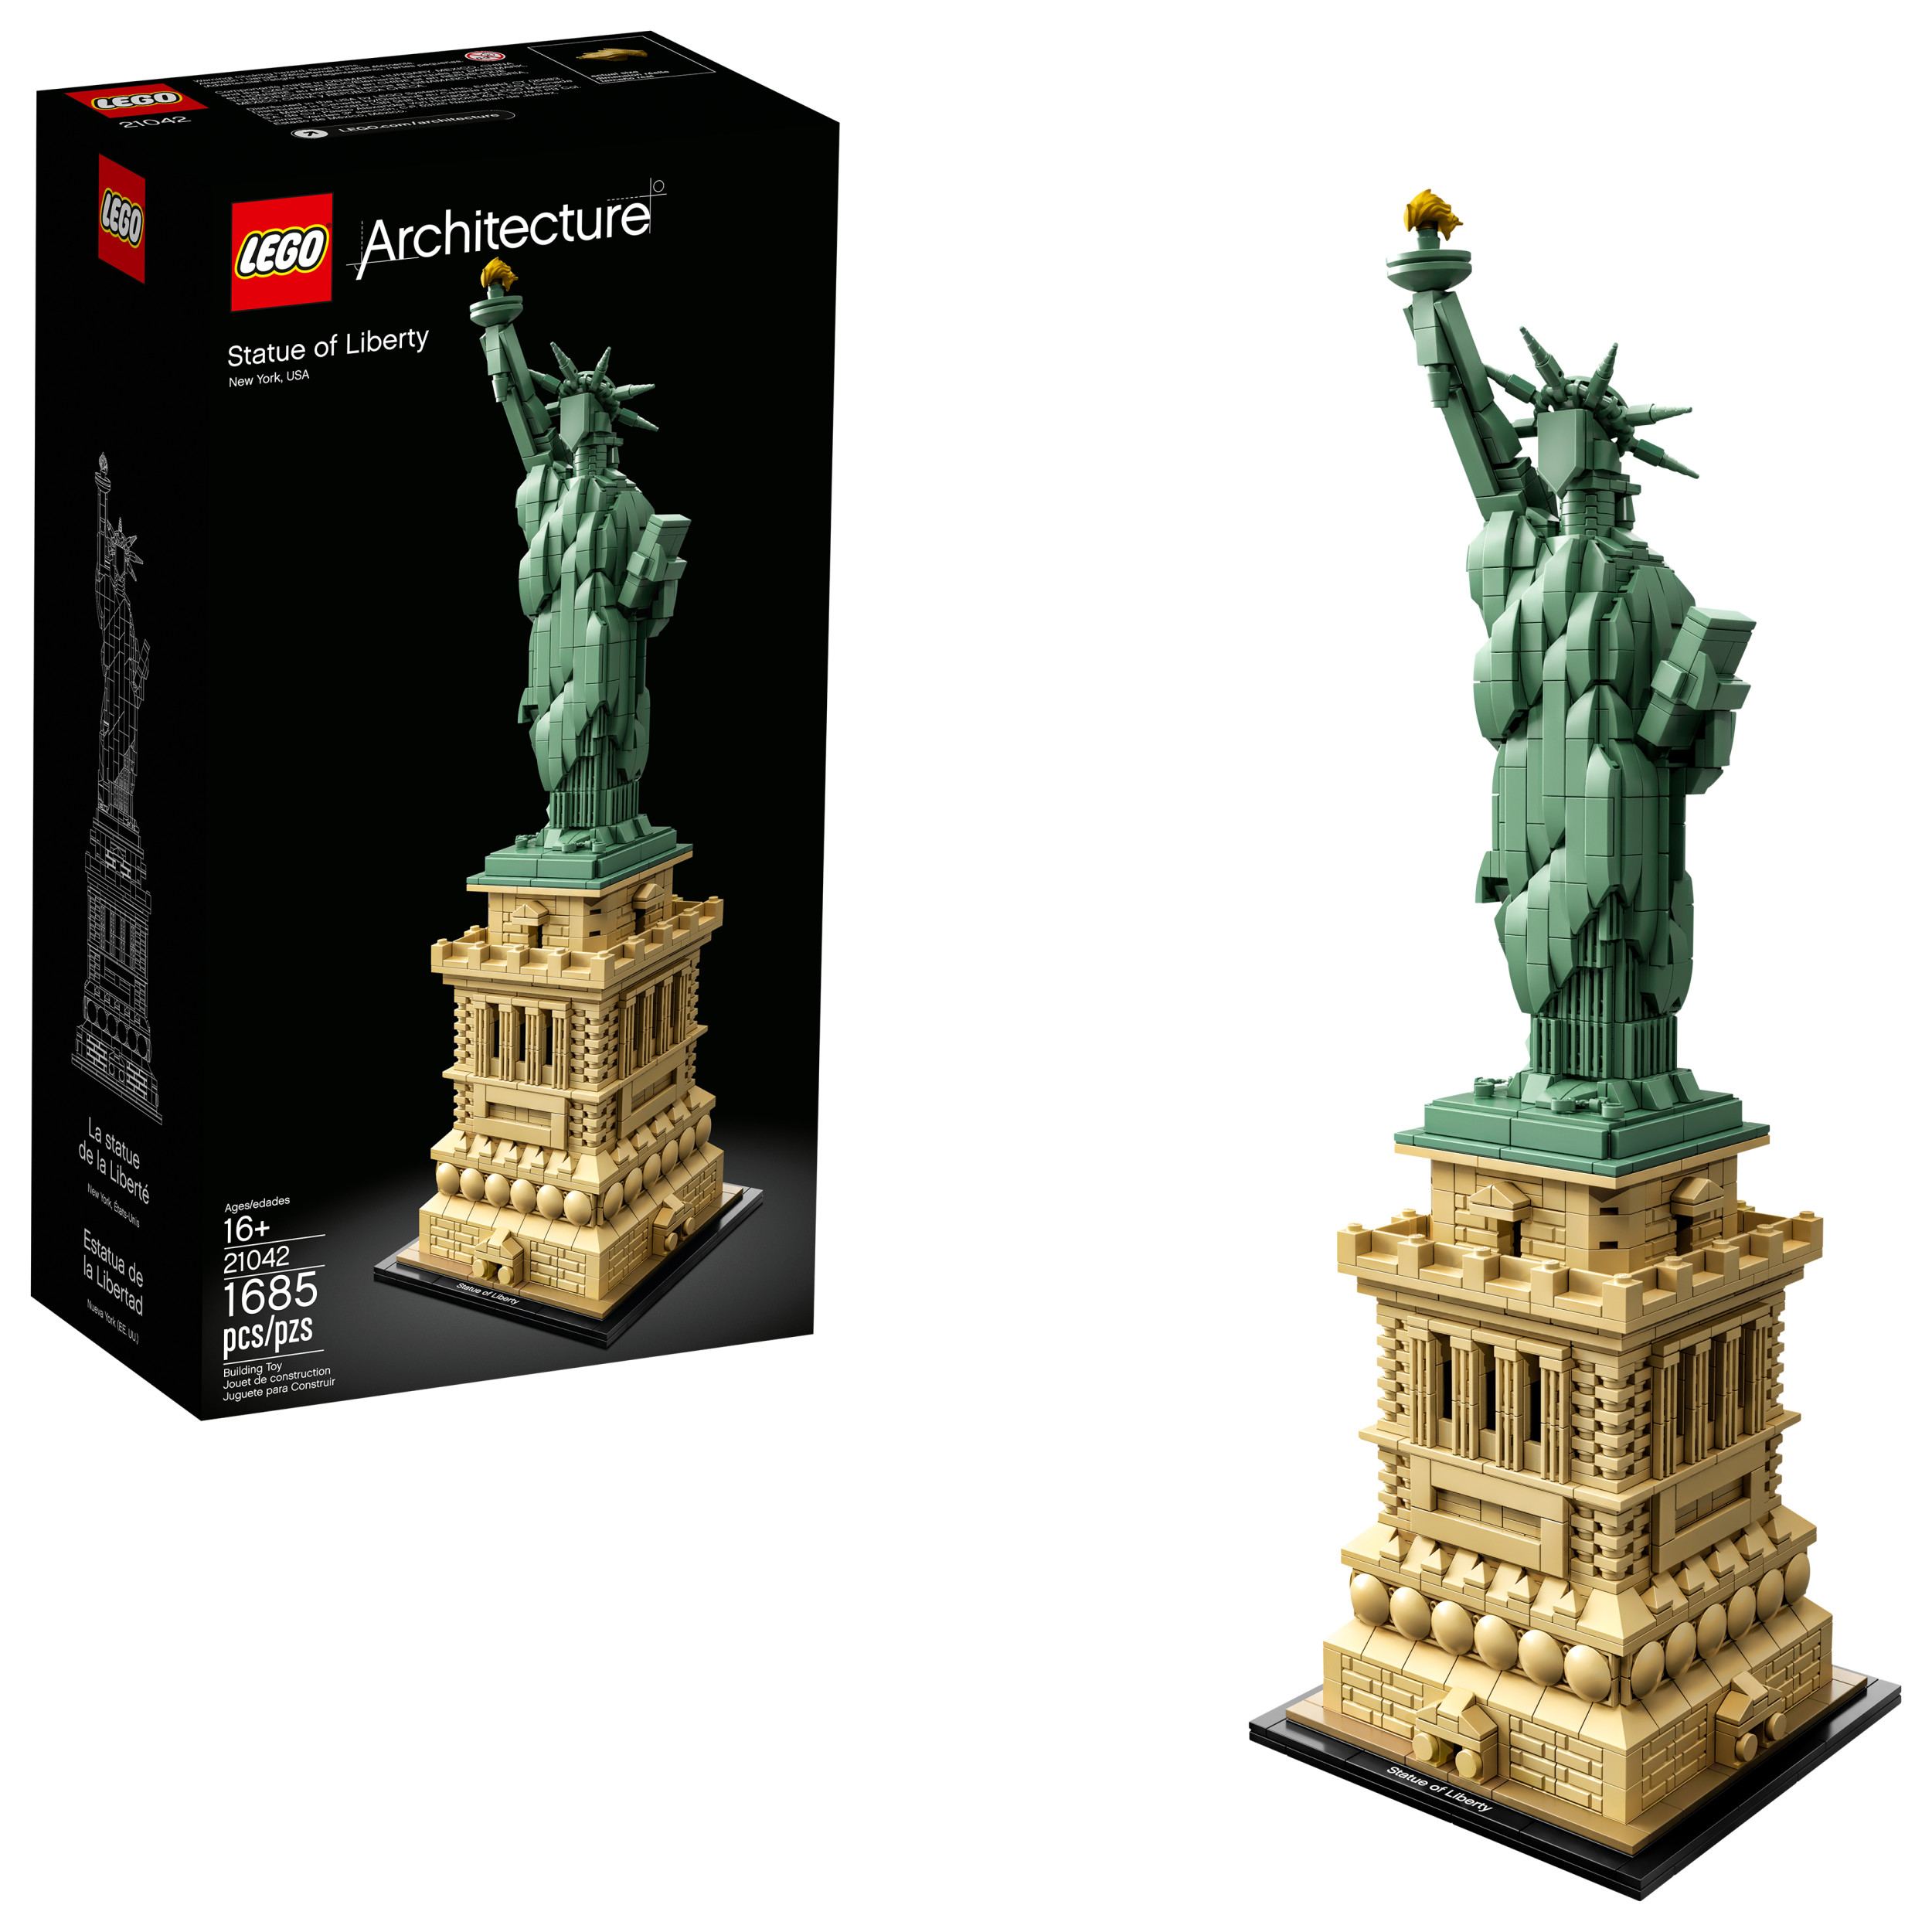 Lego New Statue of Liberty Sand Green Torch Flame Fire Minifigure Accessory